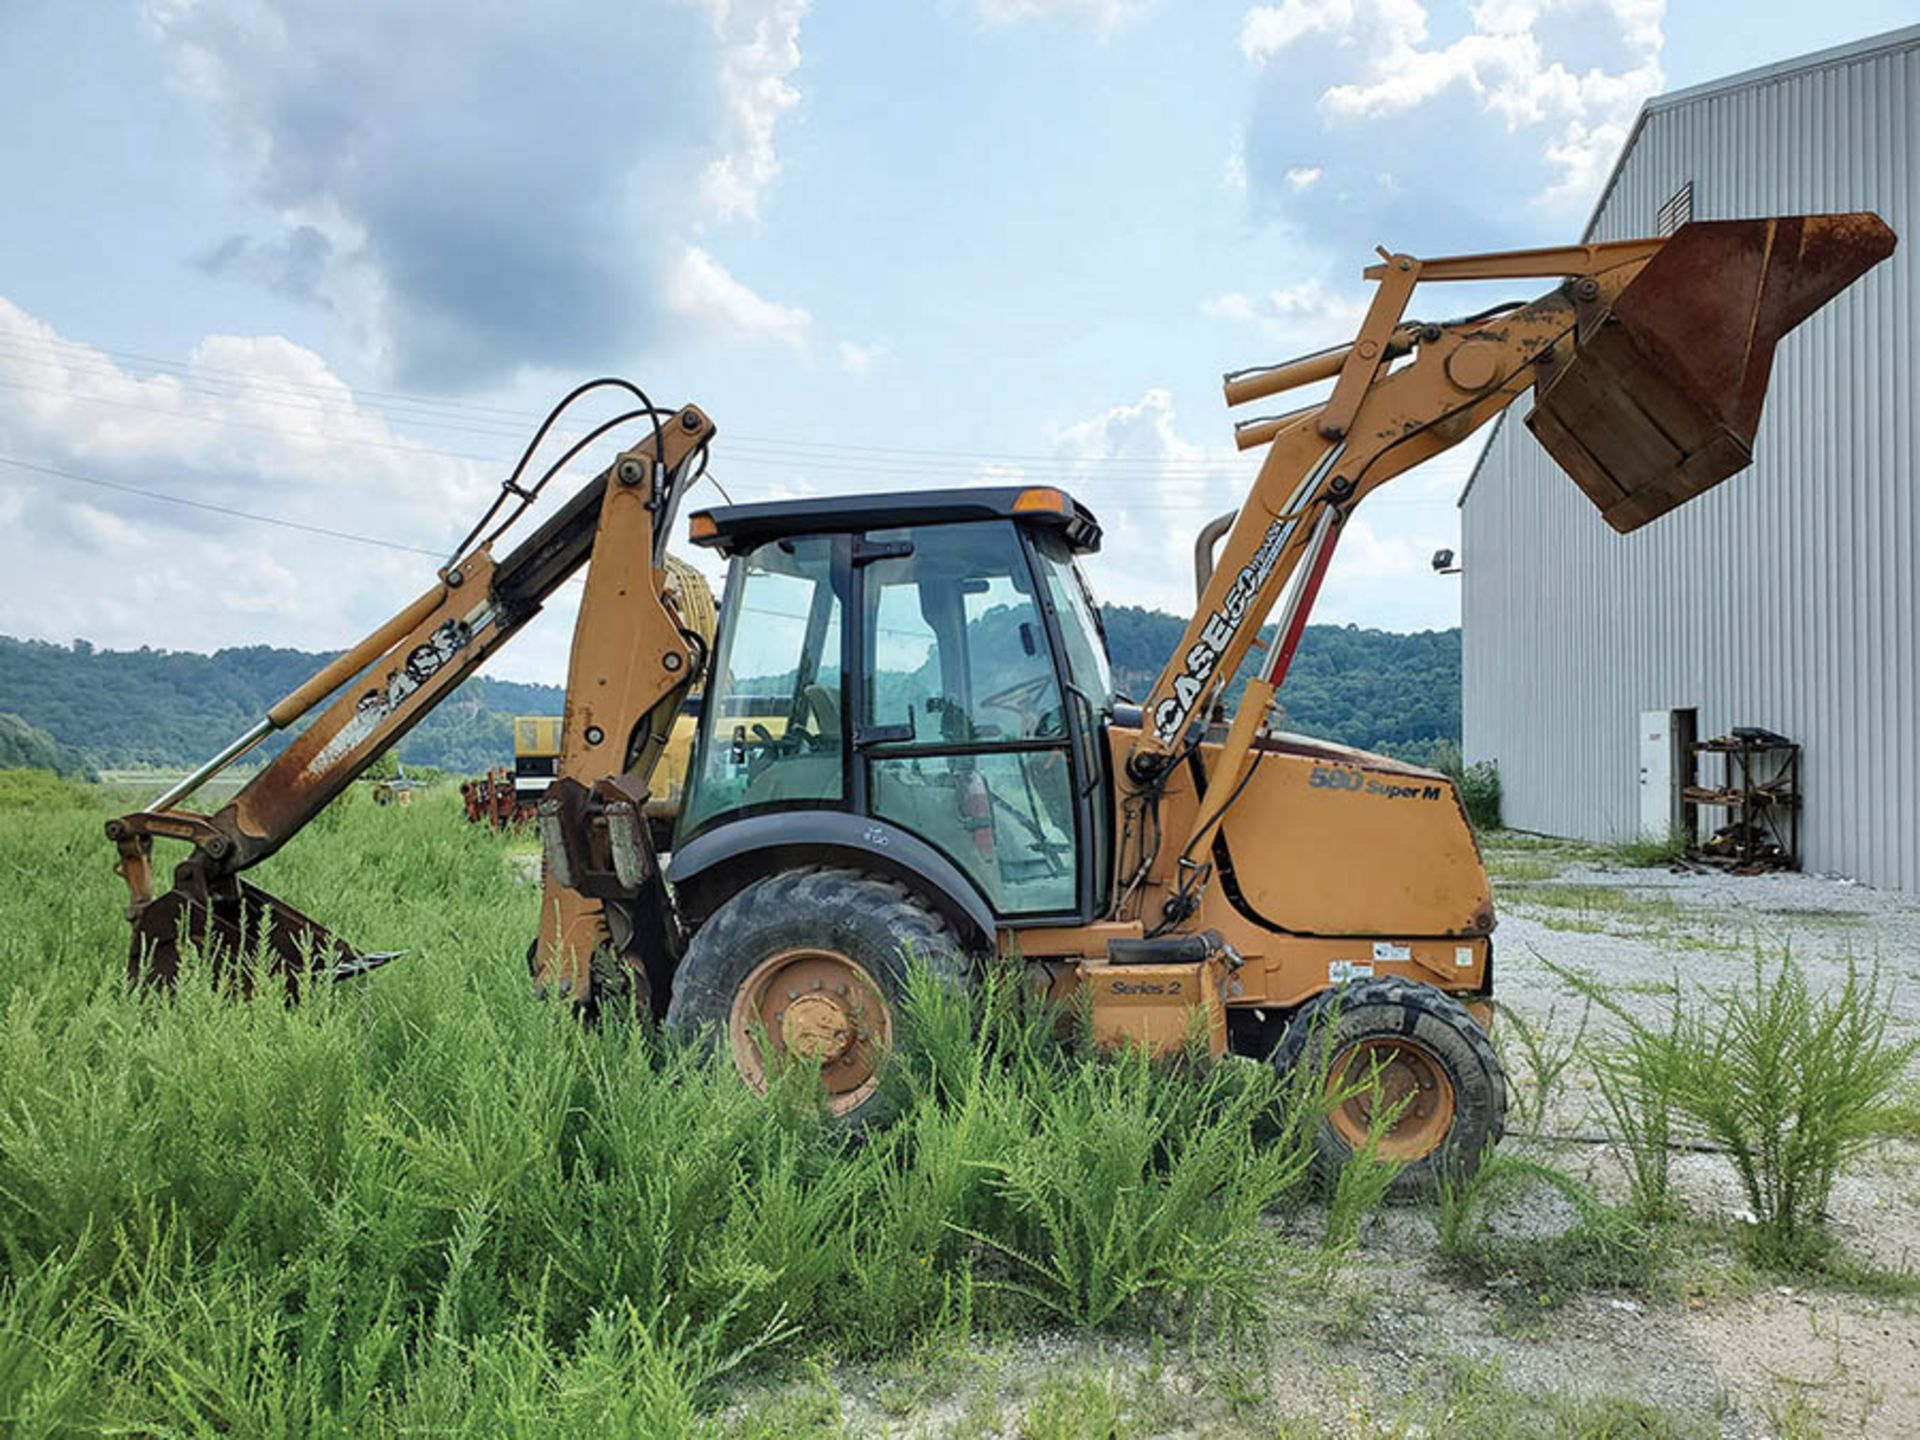 Lot 120 - CASE 580 SUPER M 4X4 LOADER BACKHOE, P/N: N7C426641, 6,690 HOURS SHOWING, 4-SPEED WITH SHUTTLE